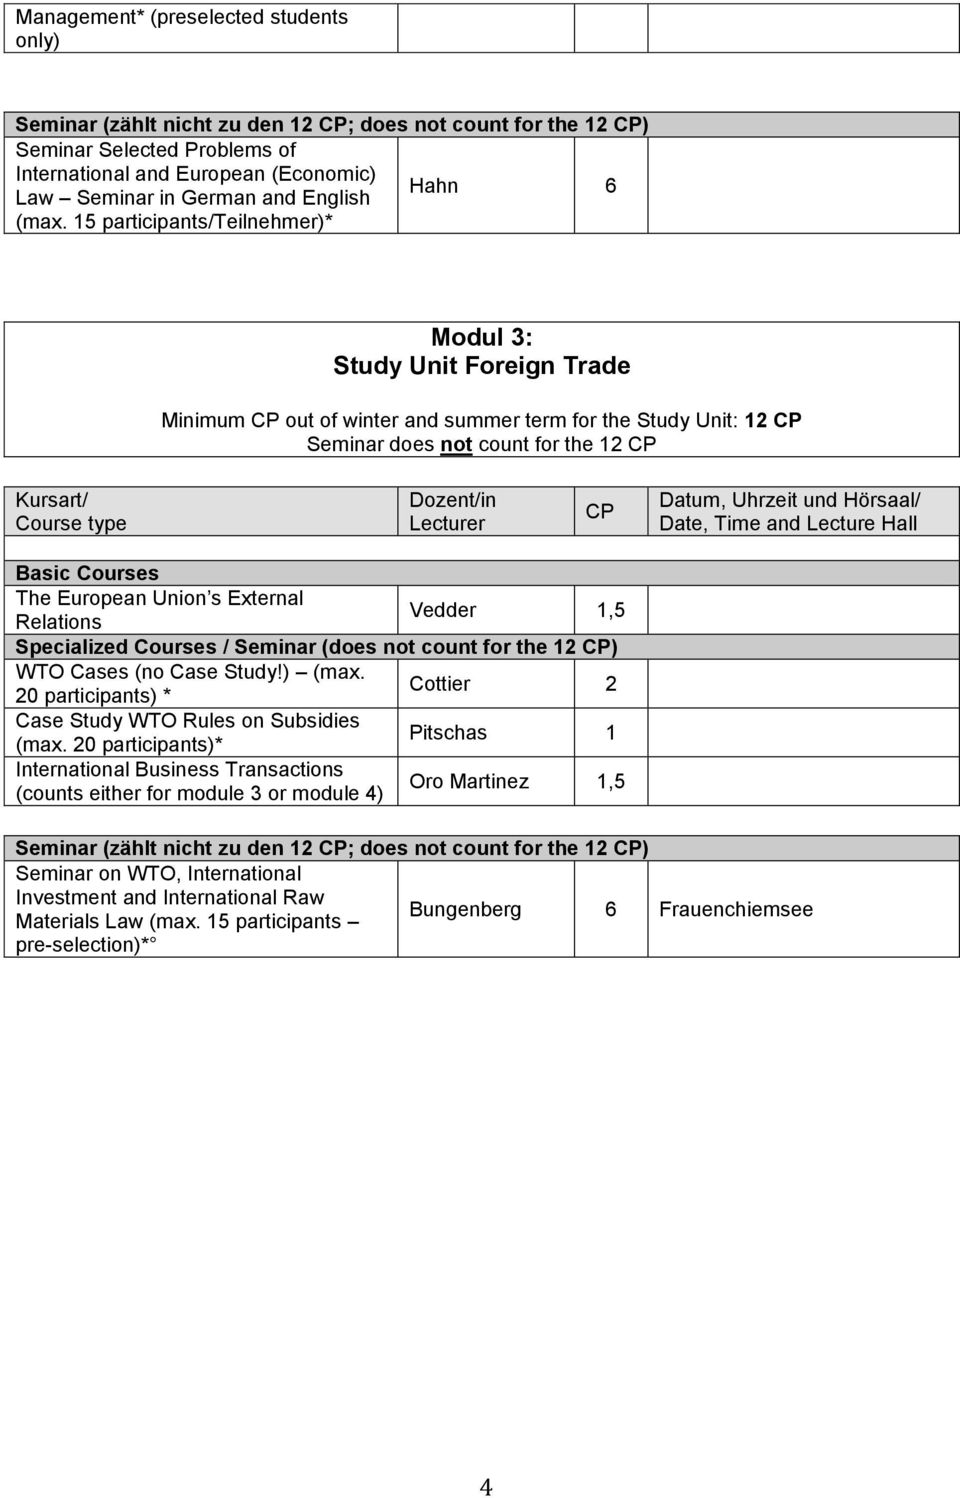 15 participants/teilnehmer)* Hahn 6 Modul 3: Study Unit Foreign Trade Minimum out of winter and summer term for the Study Unit: 12 Seminar does not count for the 12 Basic Courses The European Union s